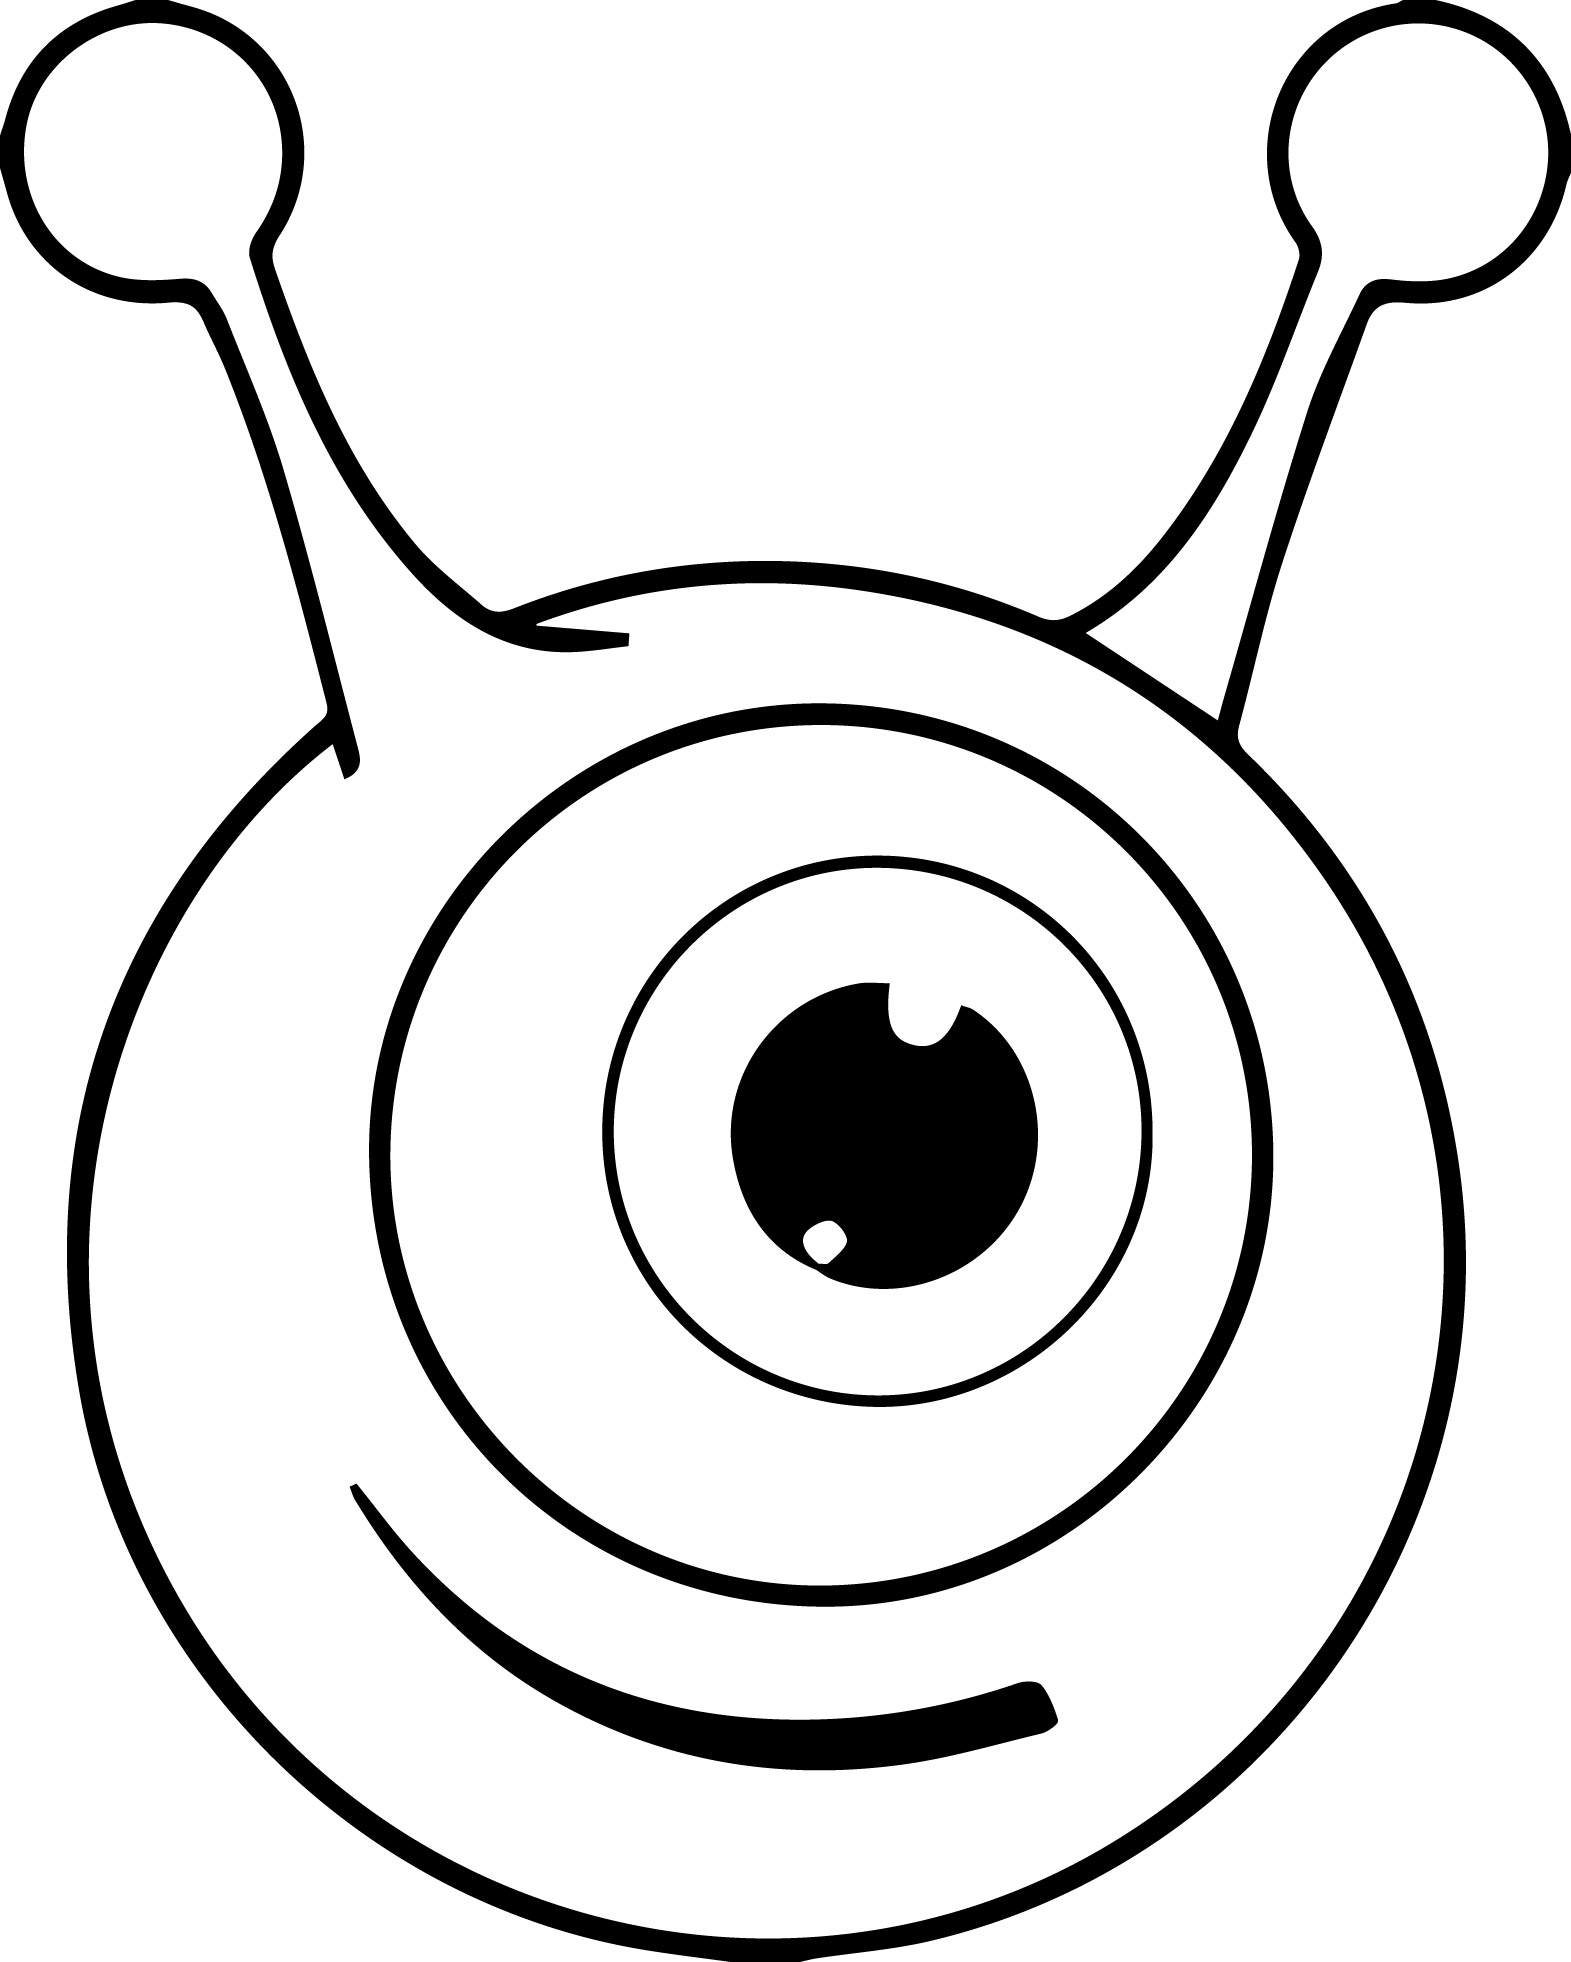 Eye Coloring Page Eye Coloring Page Free Download Best Eye Coloring Page On